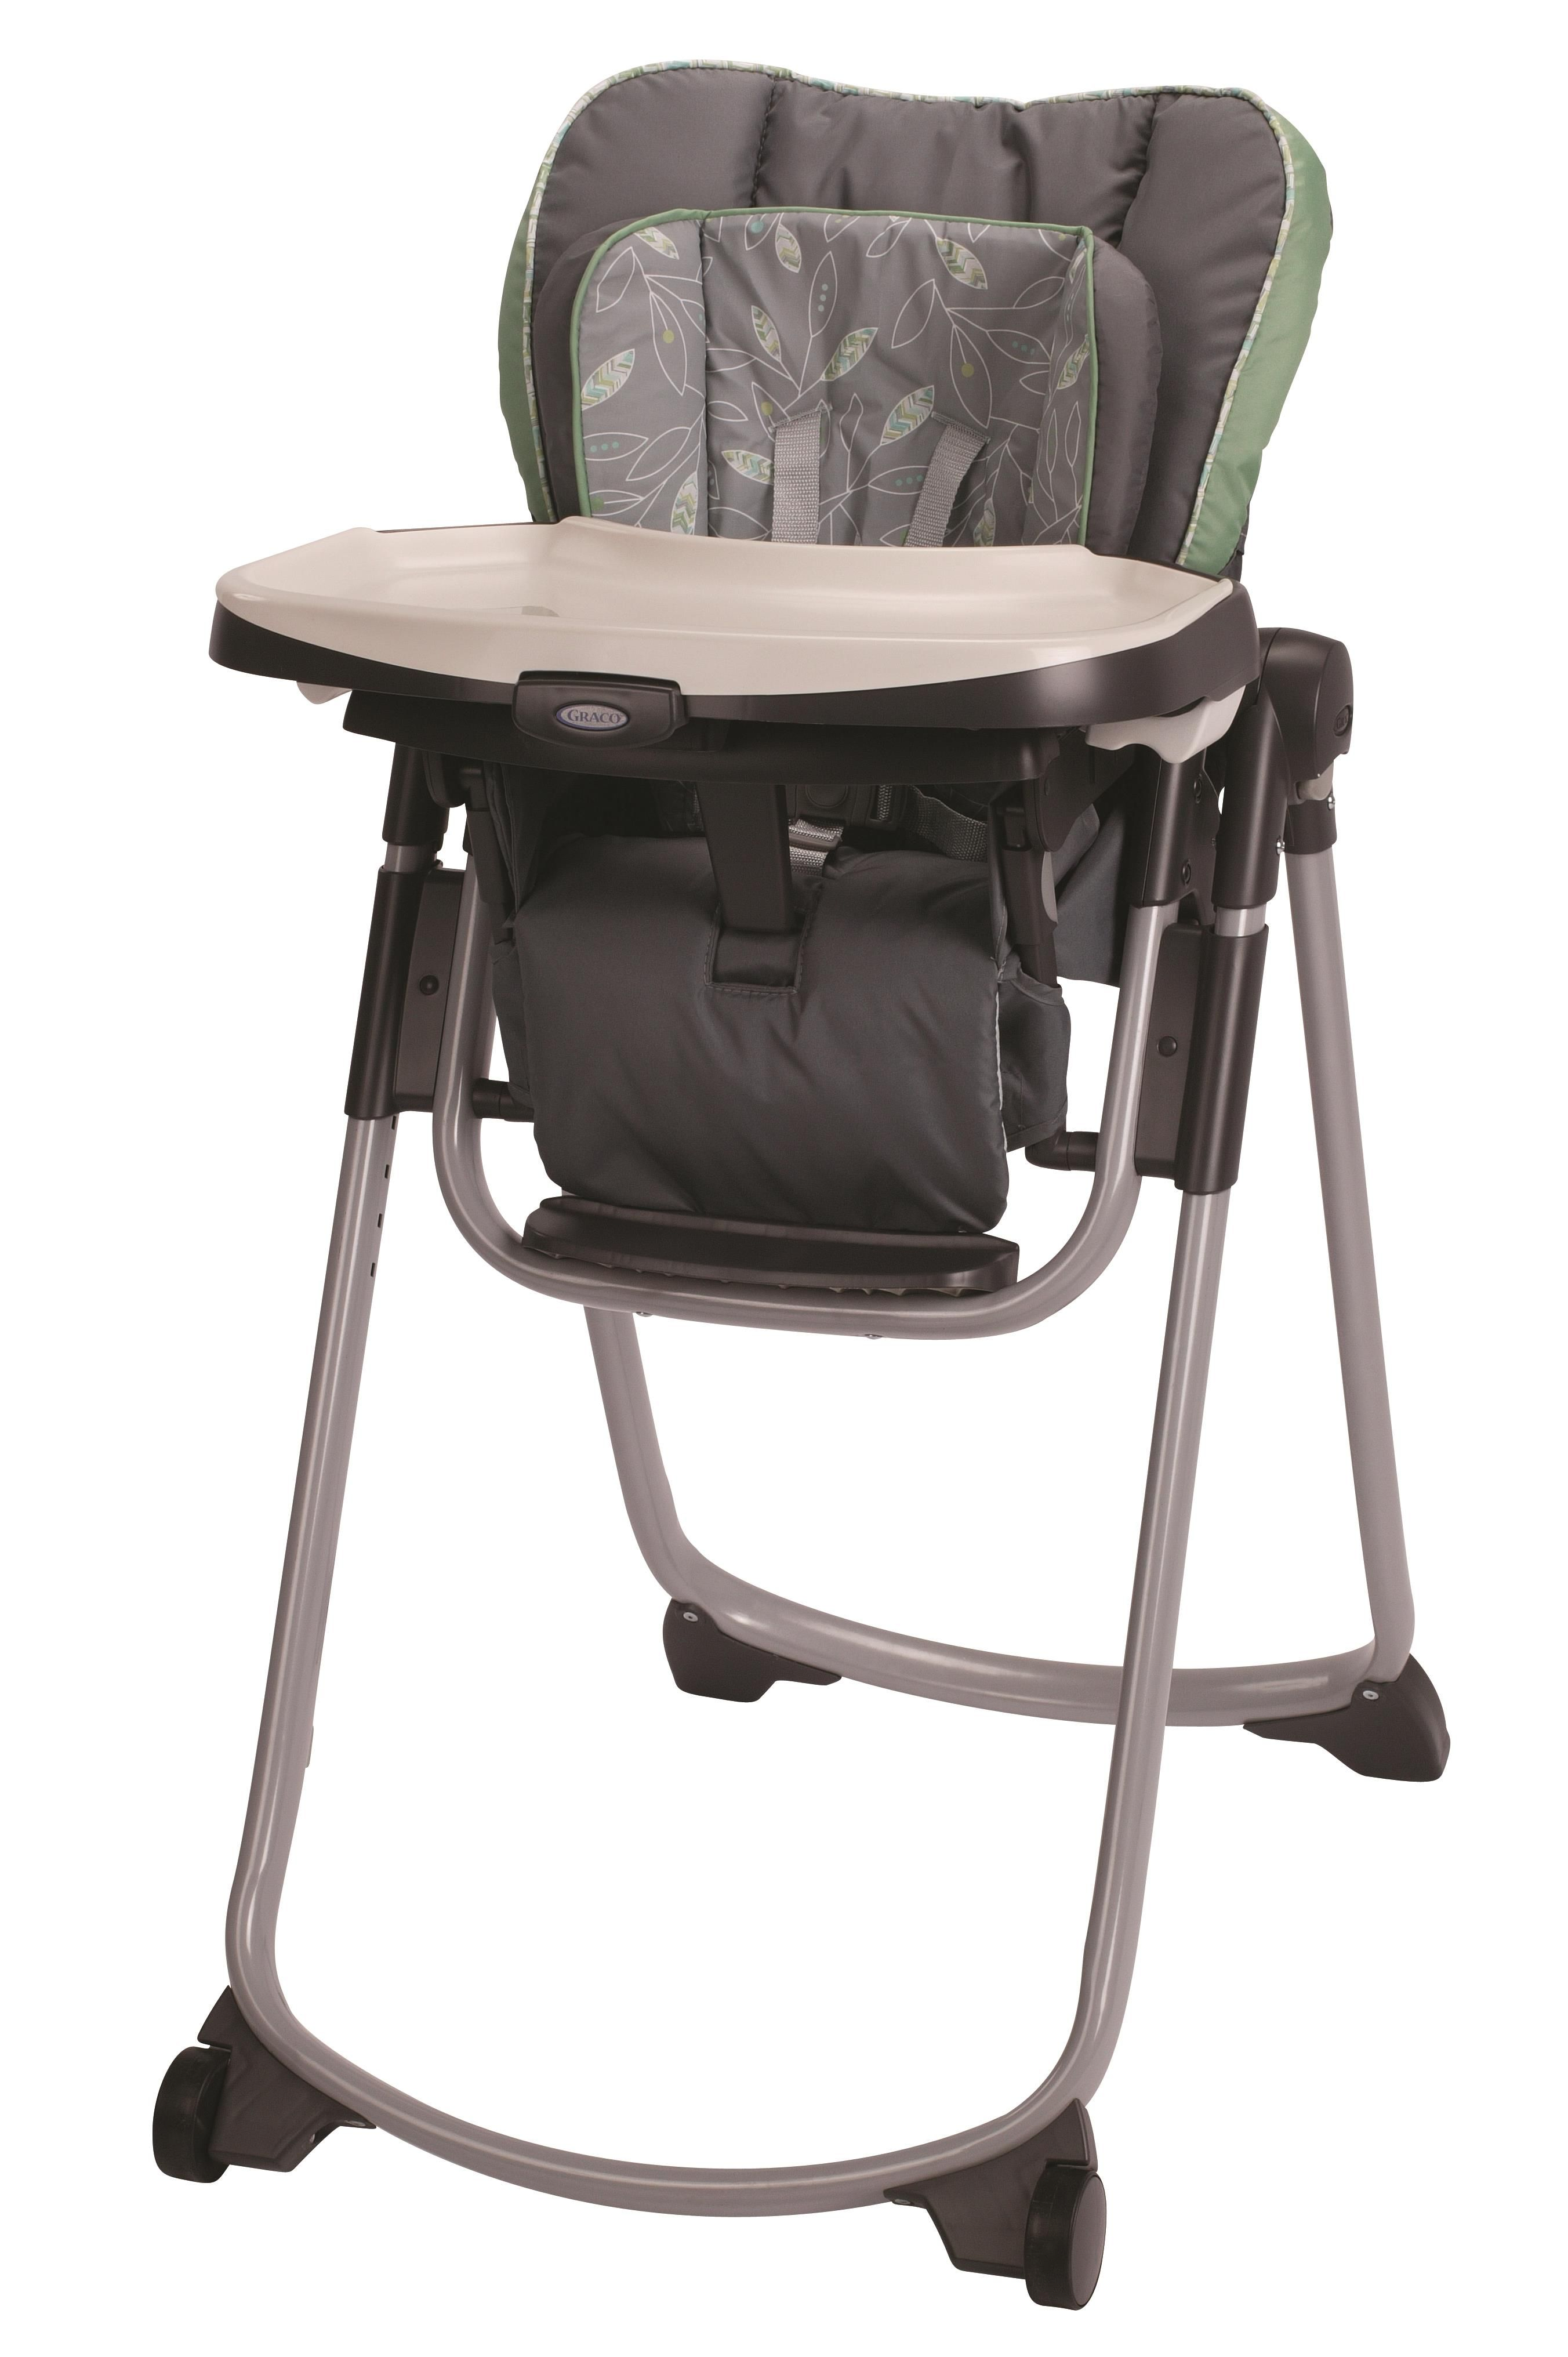 Graco Slim Spaces™ High Chair in trendy green and grey Greenhill